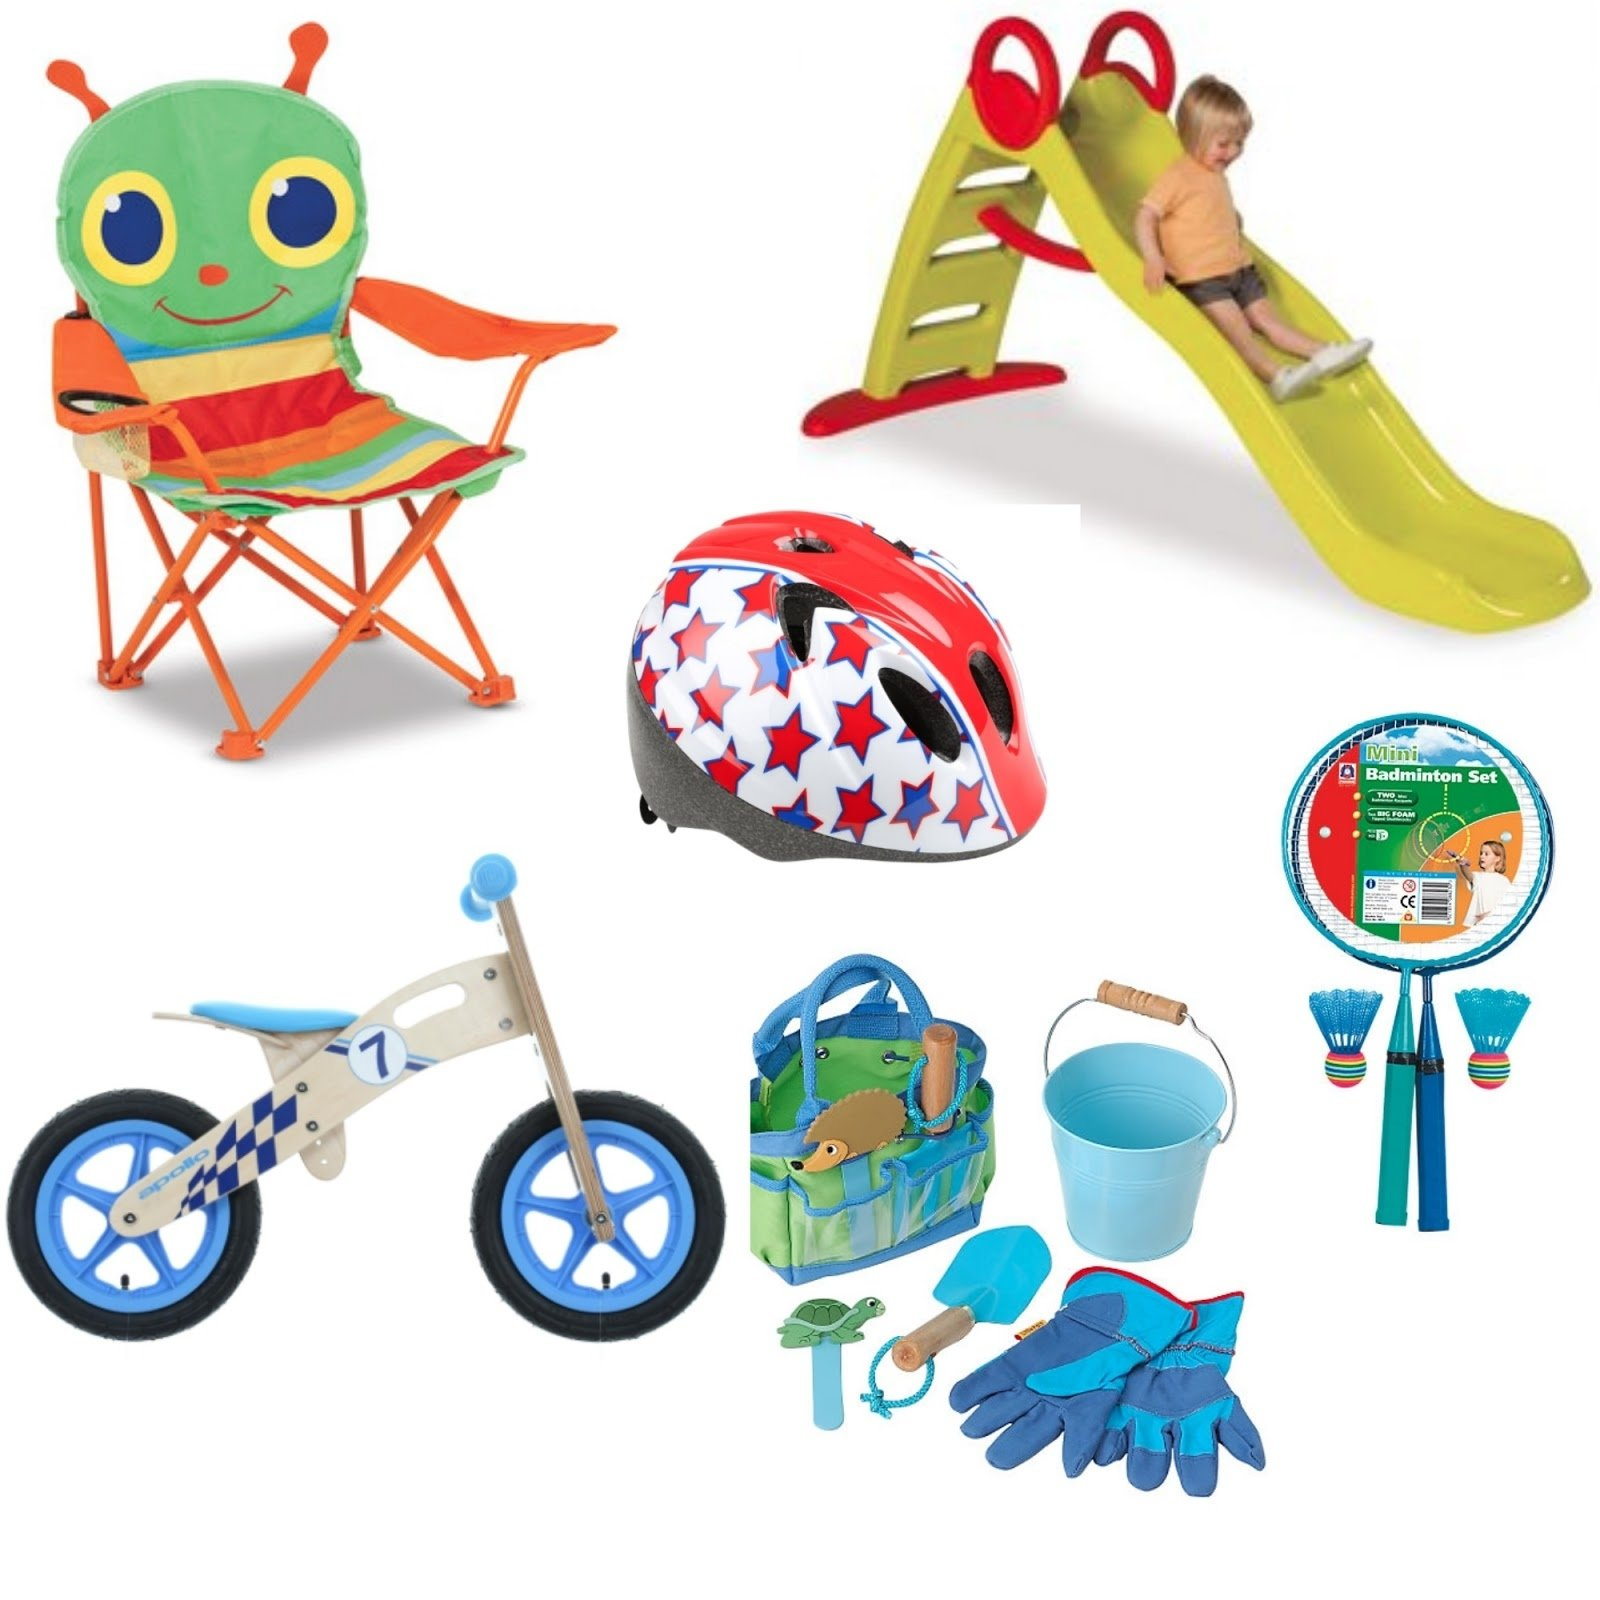 10 Wonderful Gift Ideas 3 Year Old birthday gift ideas for a 3 year old oh little one sweet 3 2020